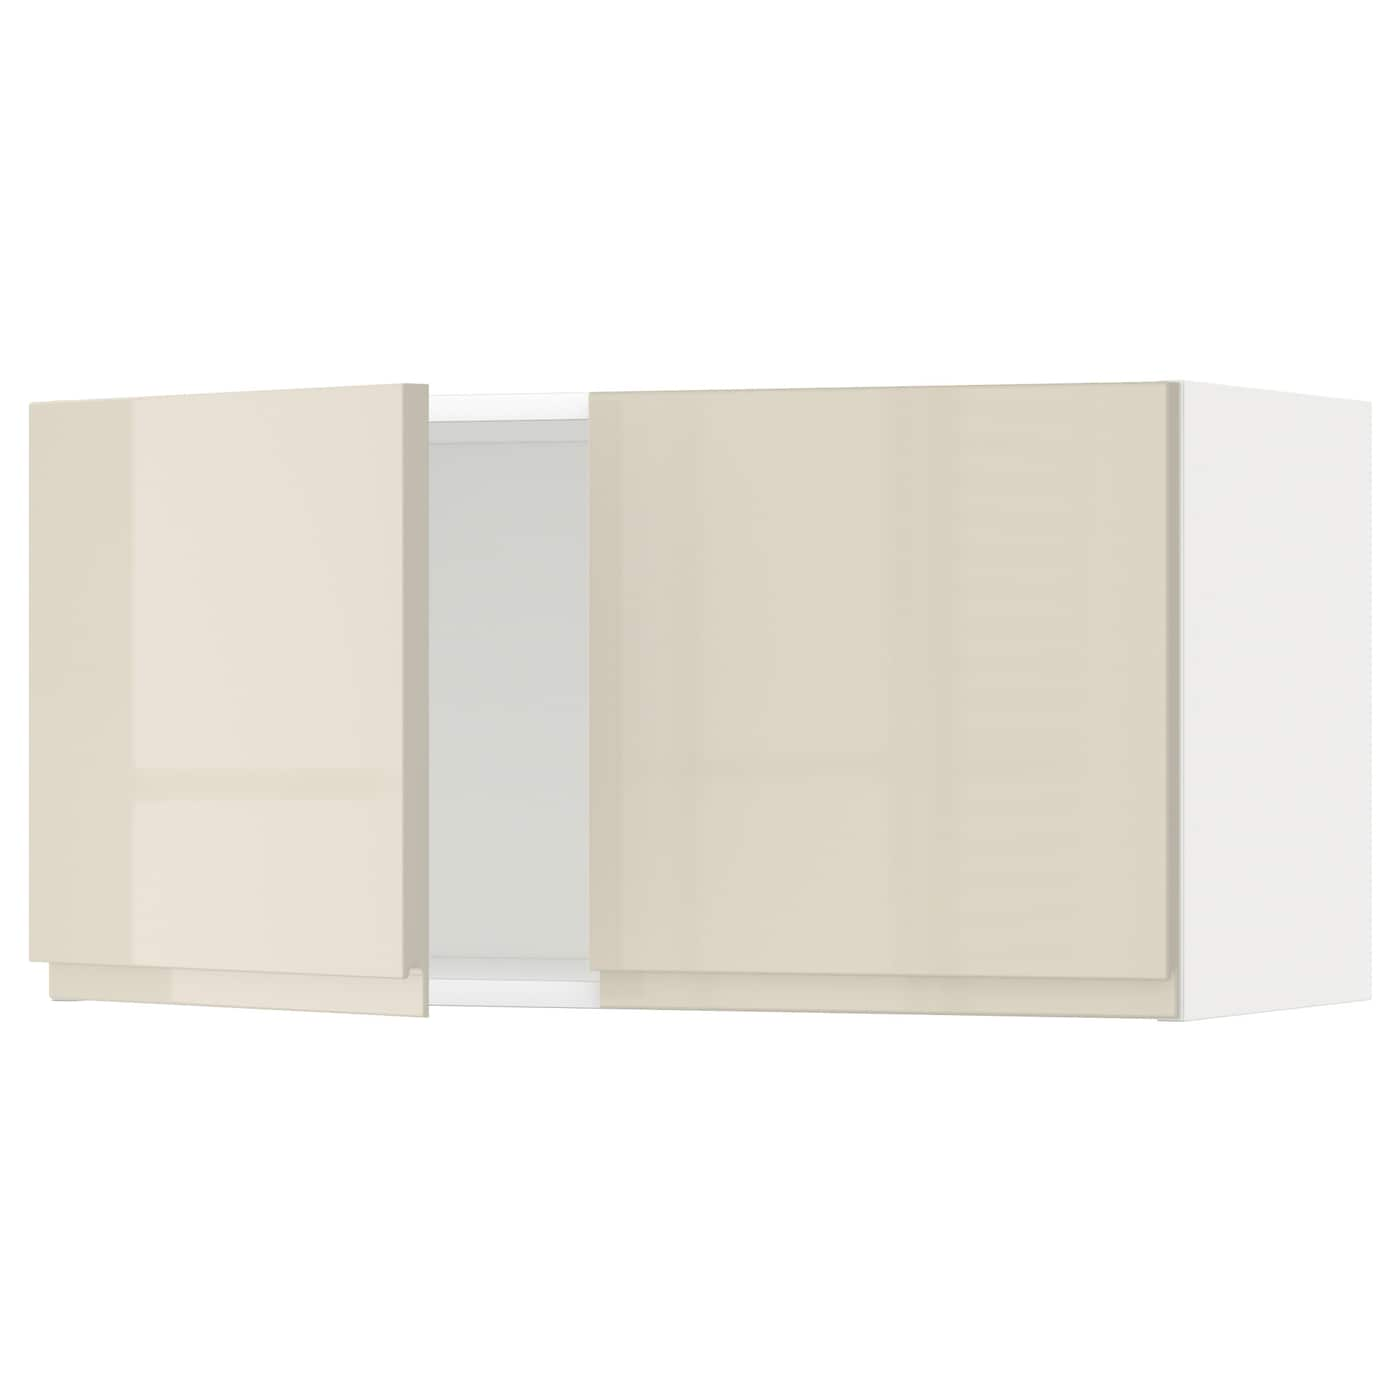 Metod Wall Cabinet With 2 Doors White Voxtorp High Gloss Light Beige 80x40 Cm Ikea